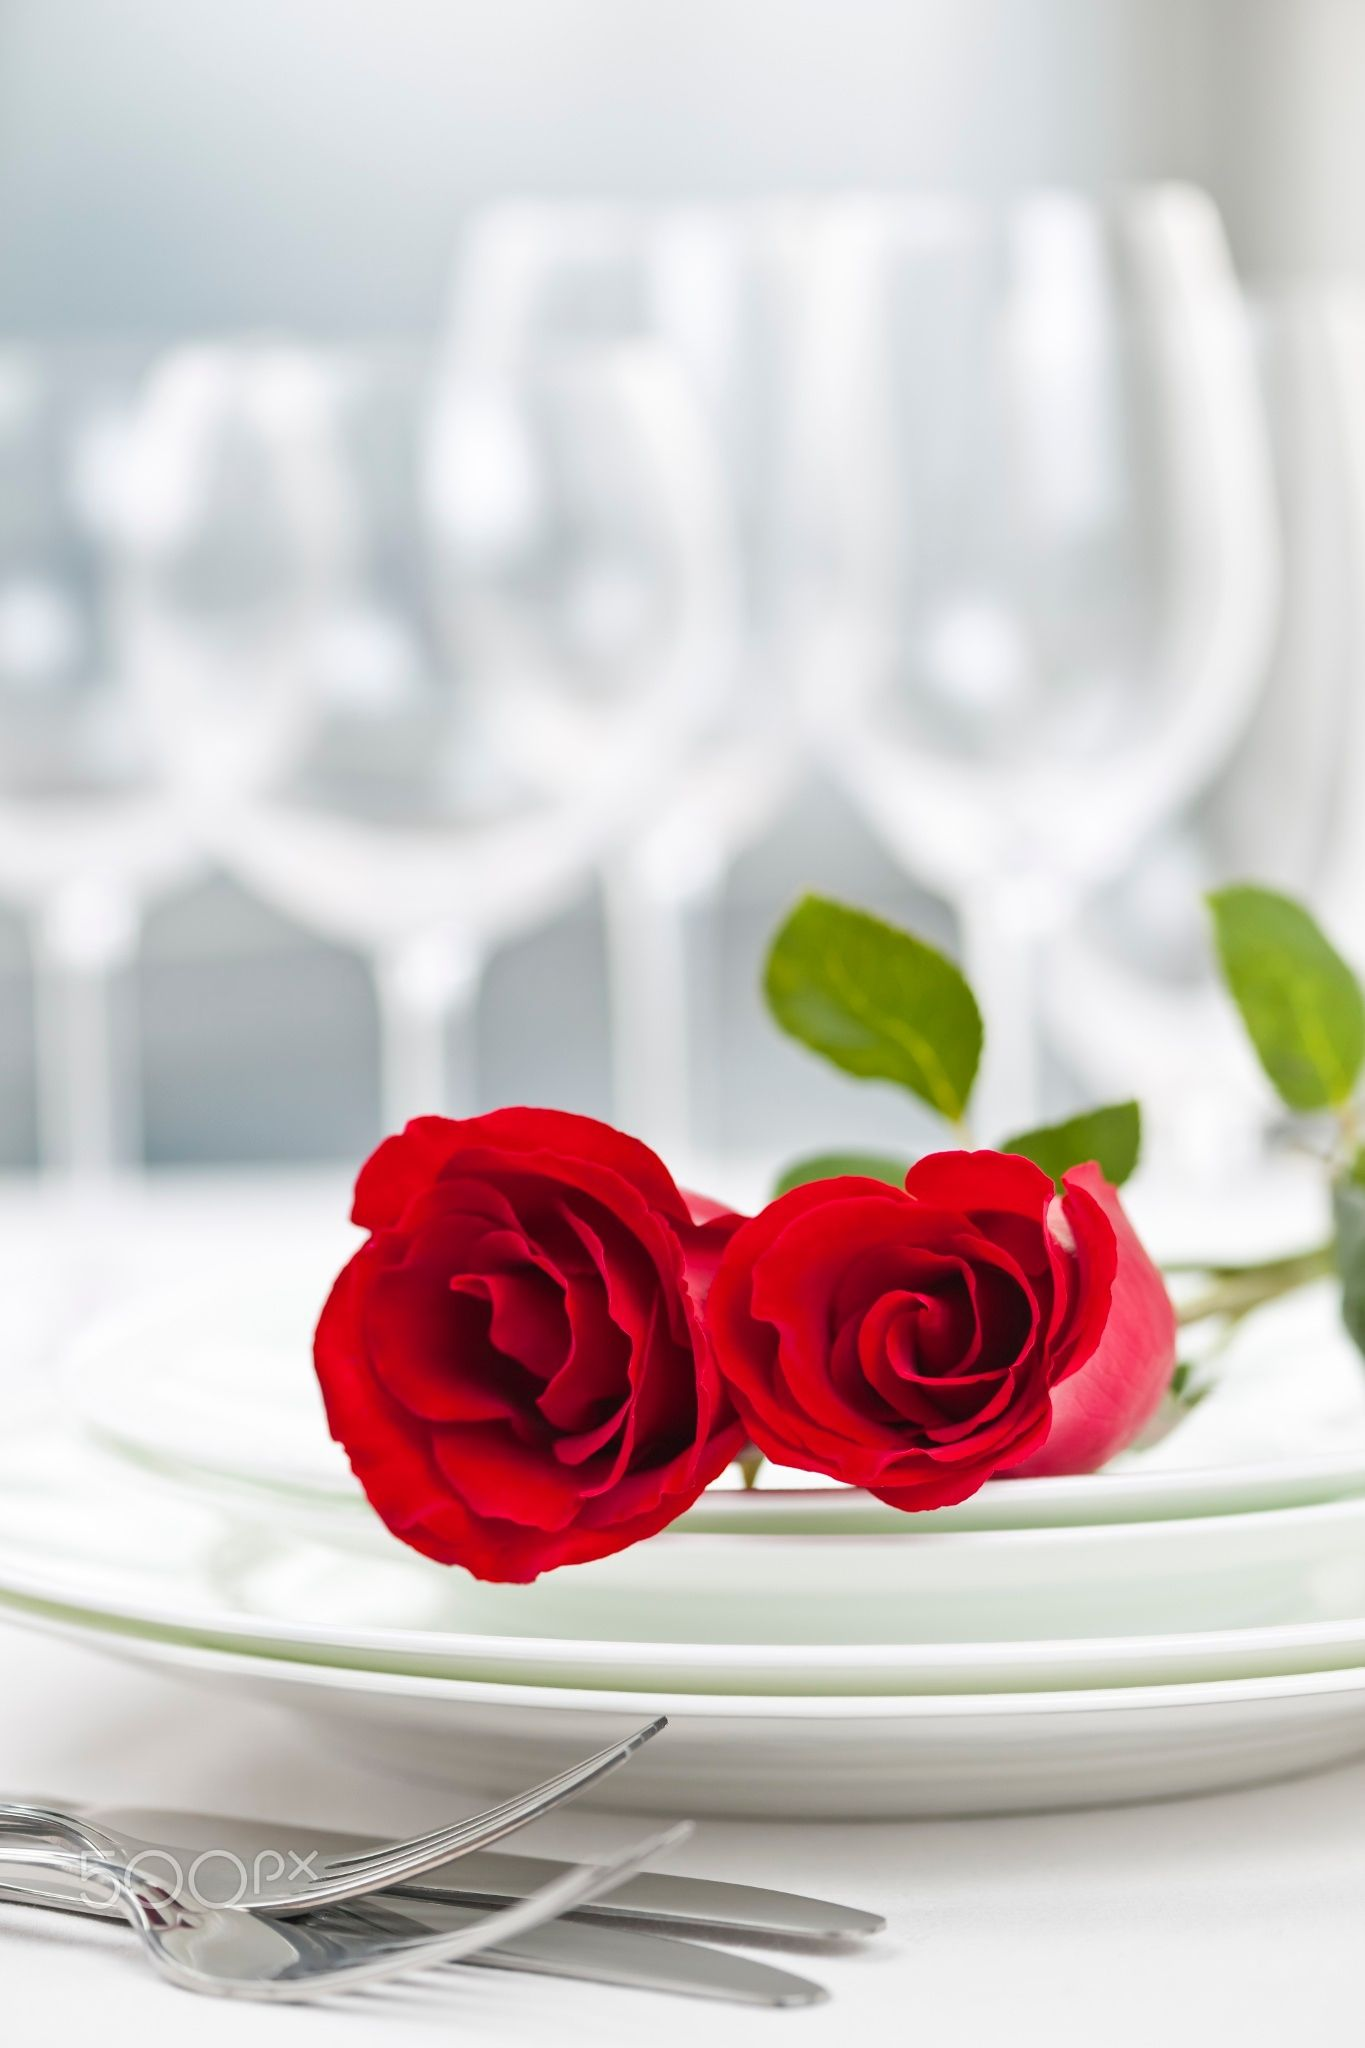 Restaurant table setting for two - Romantic Restaurant Dinner Setting Romantic Restaurant Table Setting For Two With Roses Plates And Cutlery